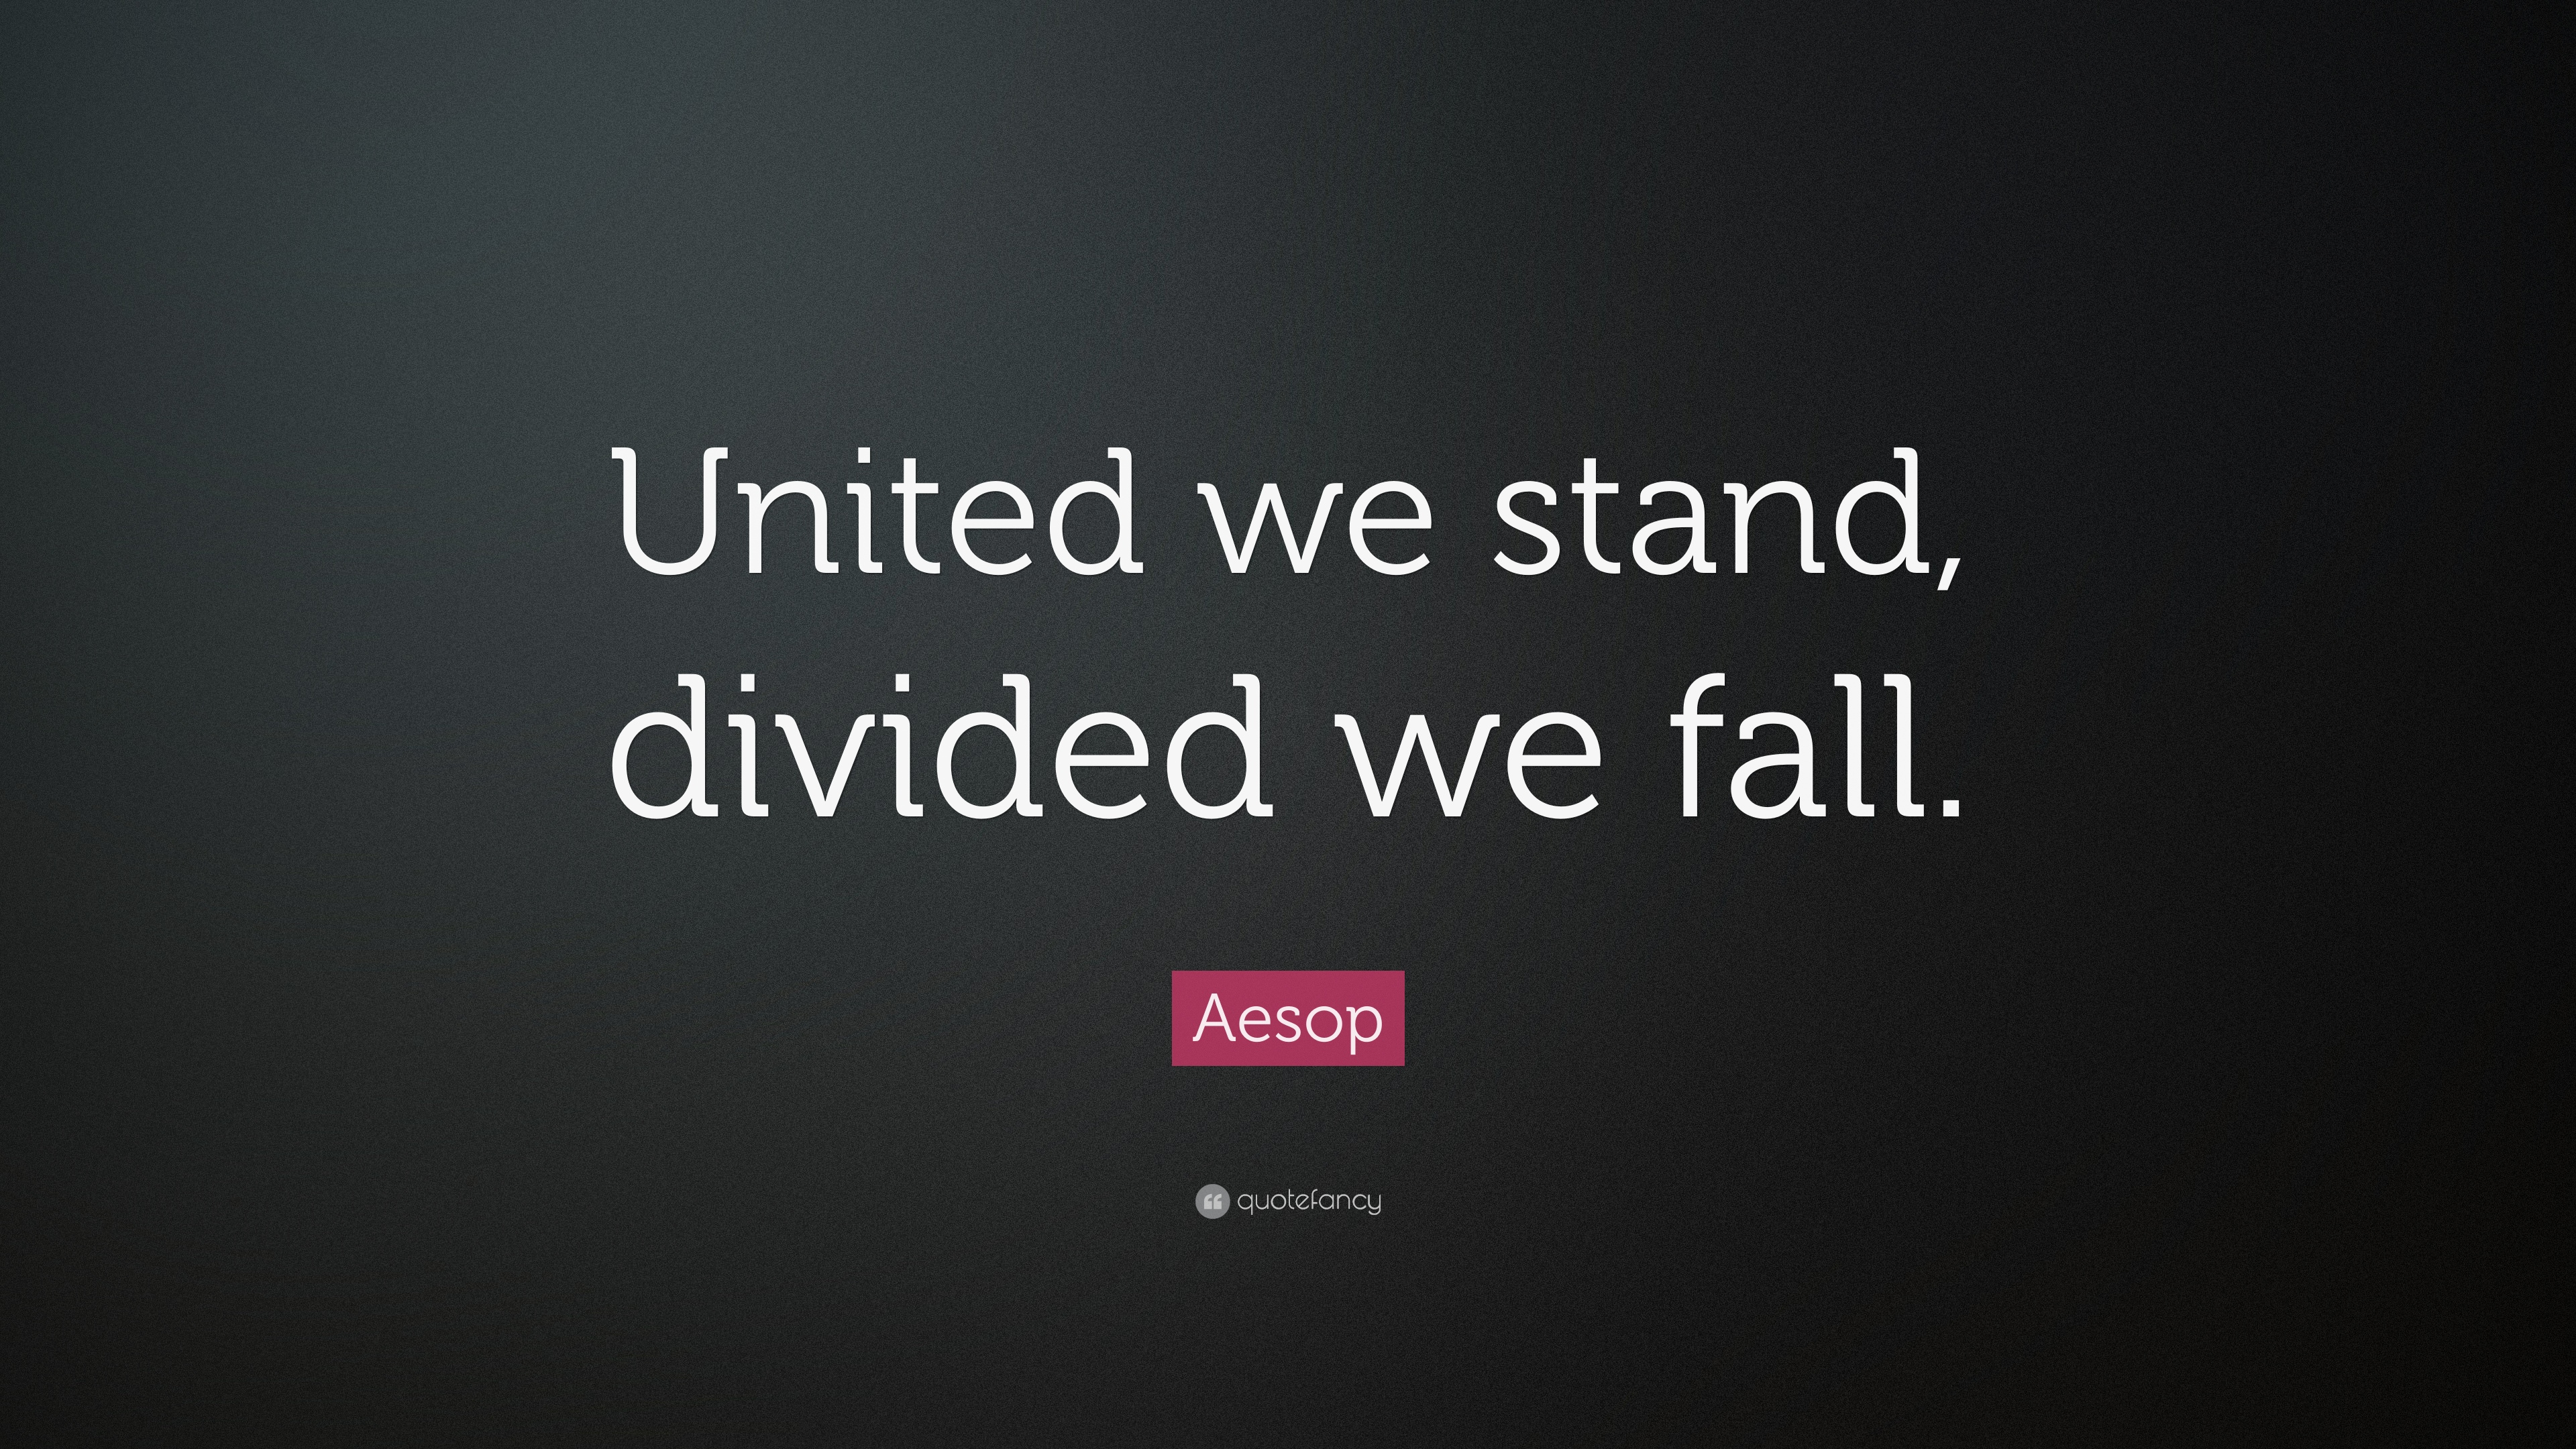 coopetition united we stand divided we fall essay